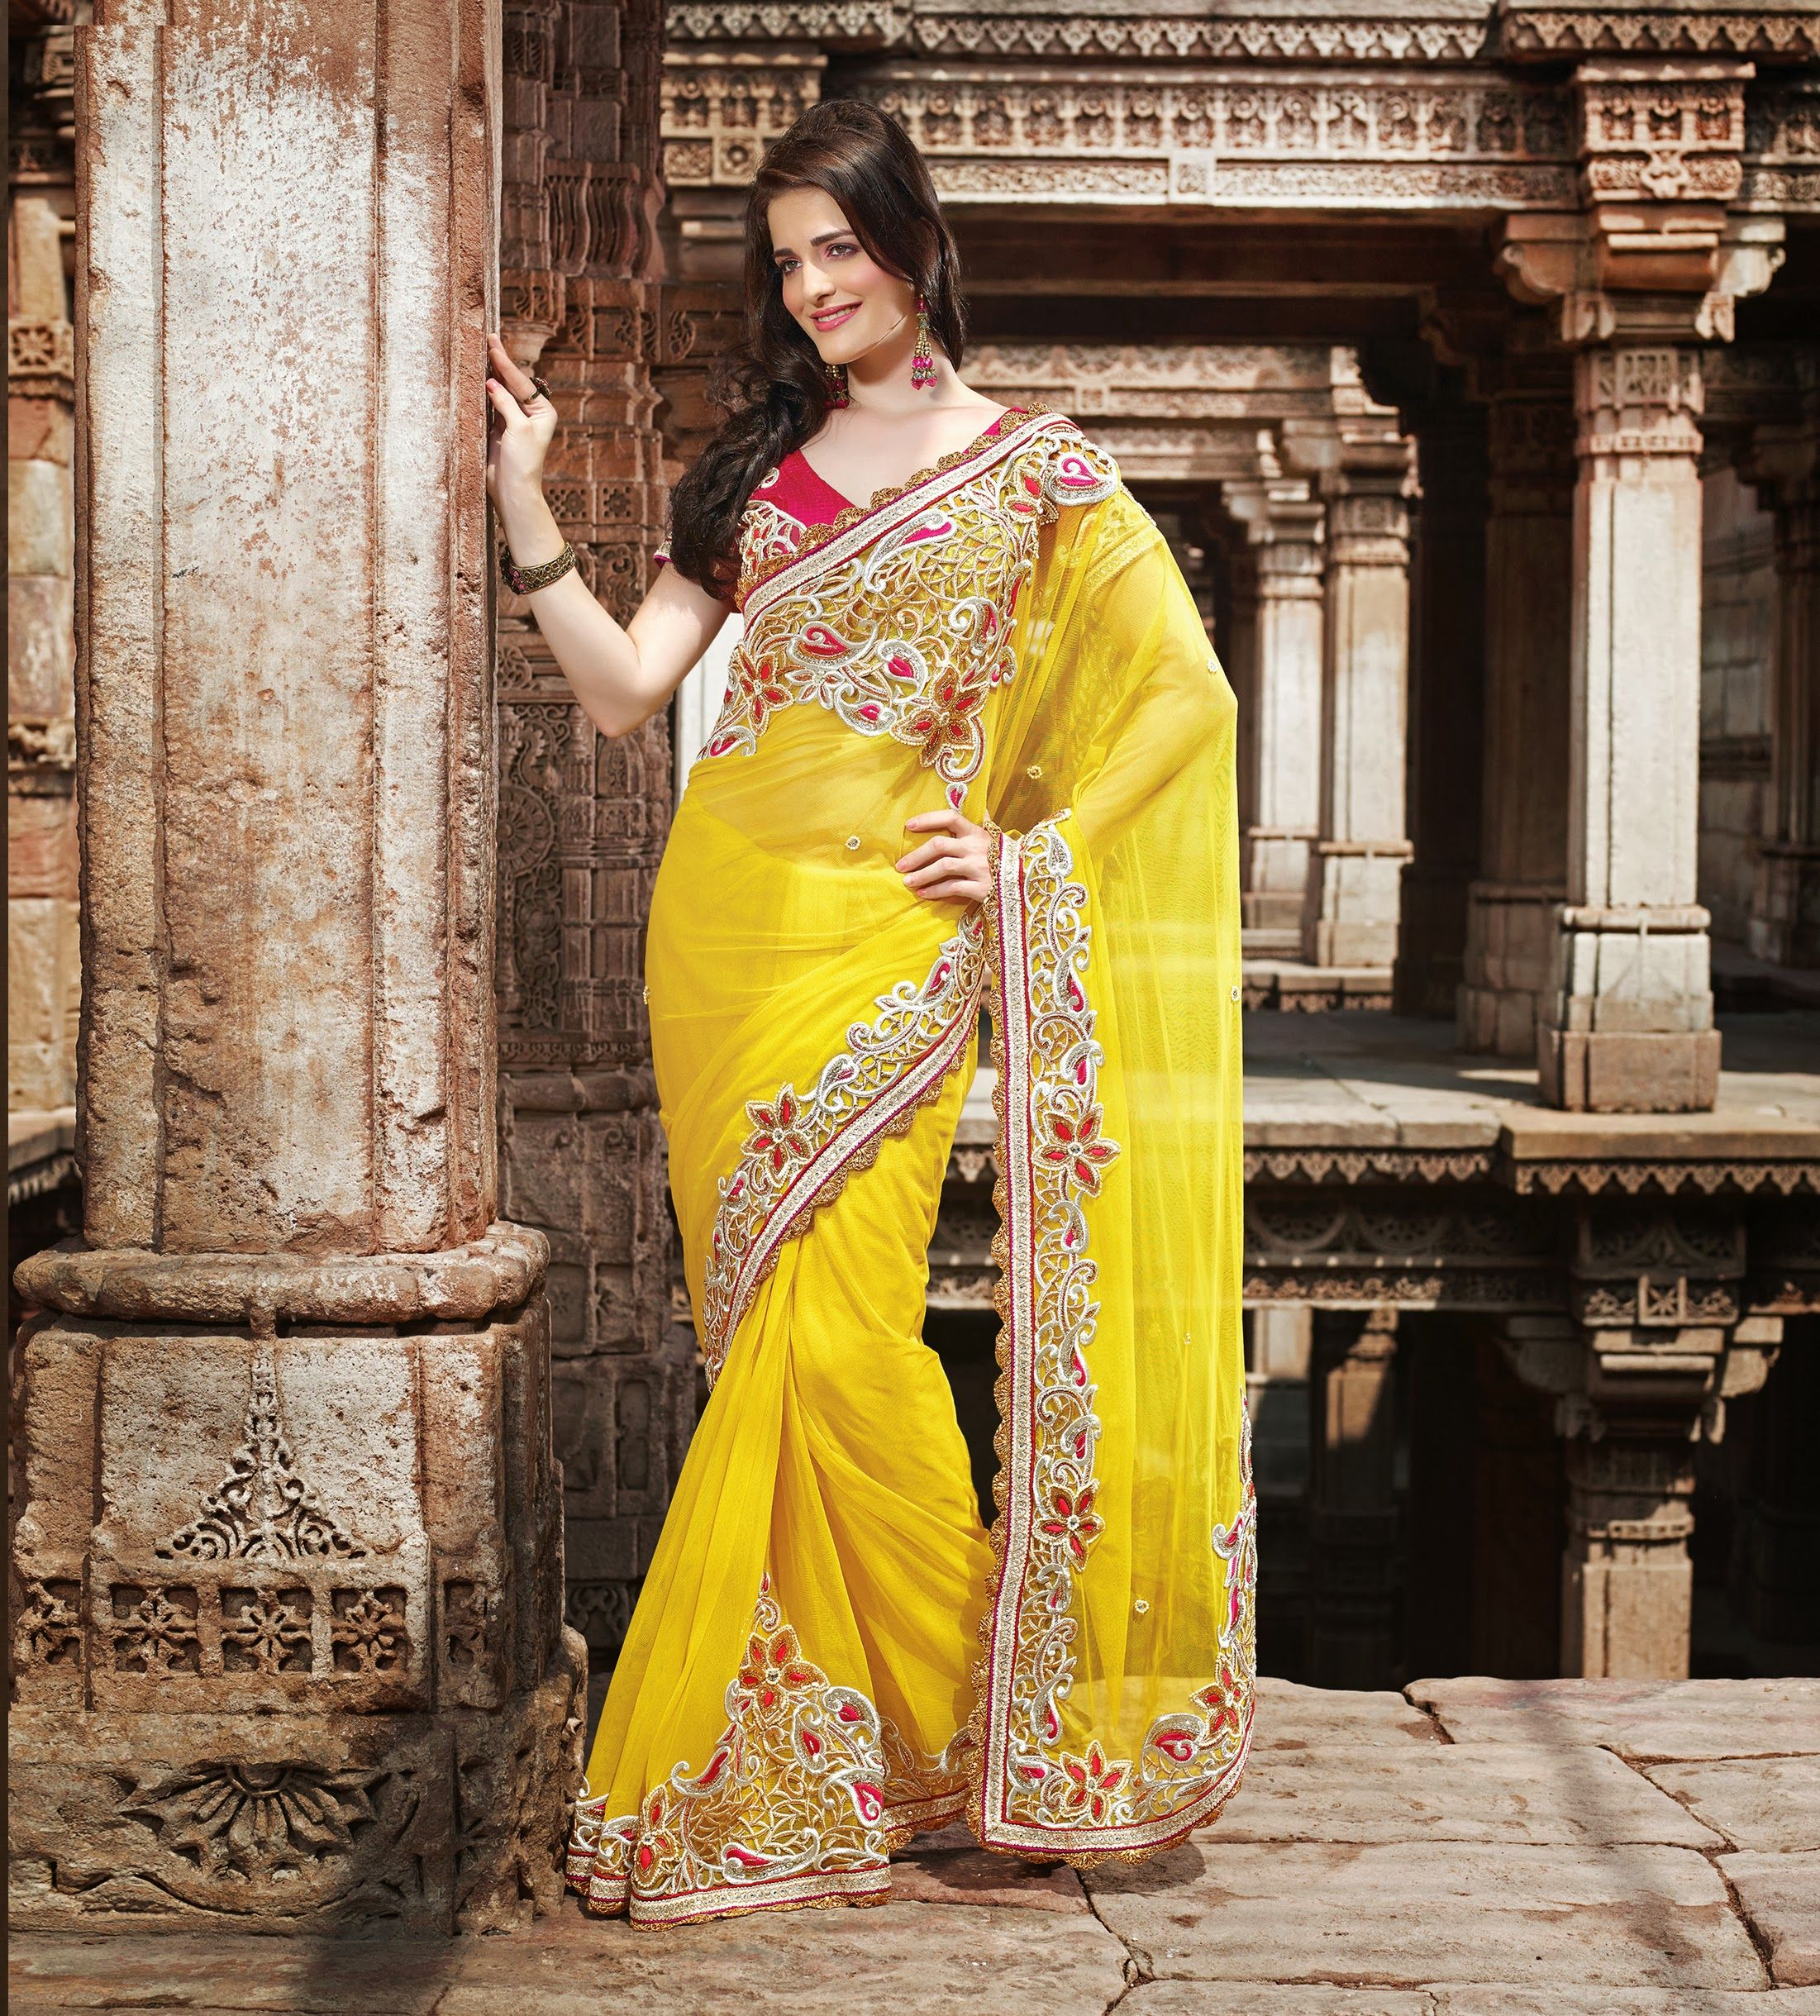 acfb541d88 #Yellow #Net #Saree with Zari, Resham Embroidery, Cutwork, Stone, Moti and  Gotta Patti work with Heavy Border and Jewellery pattern.